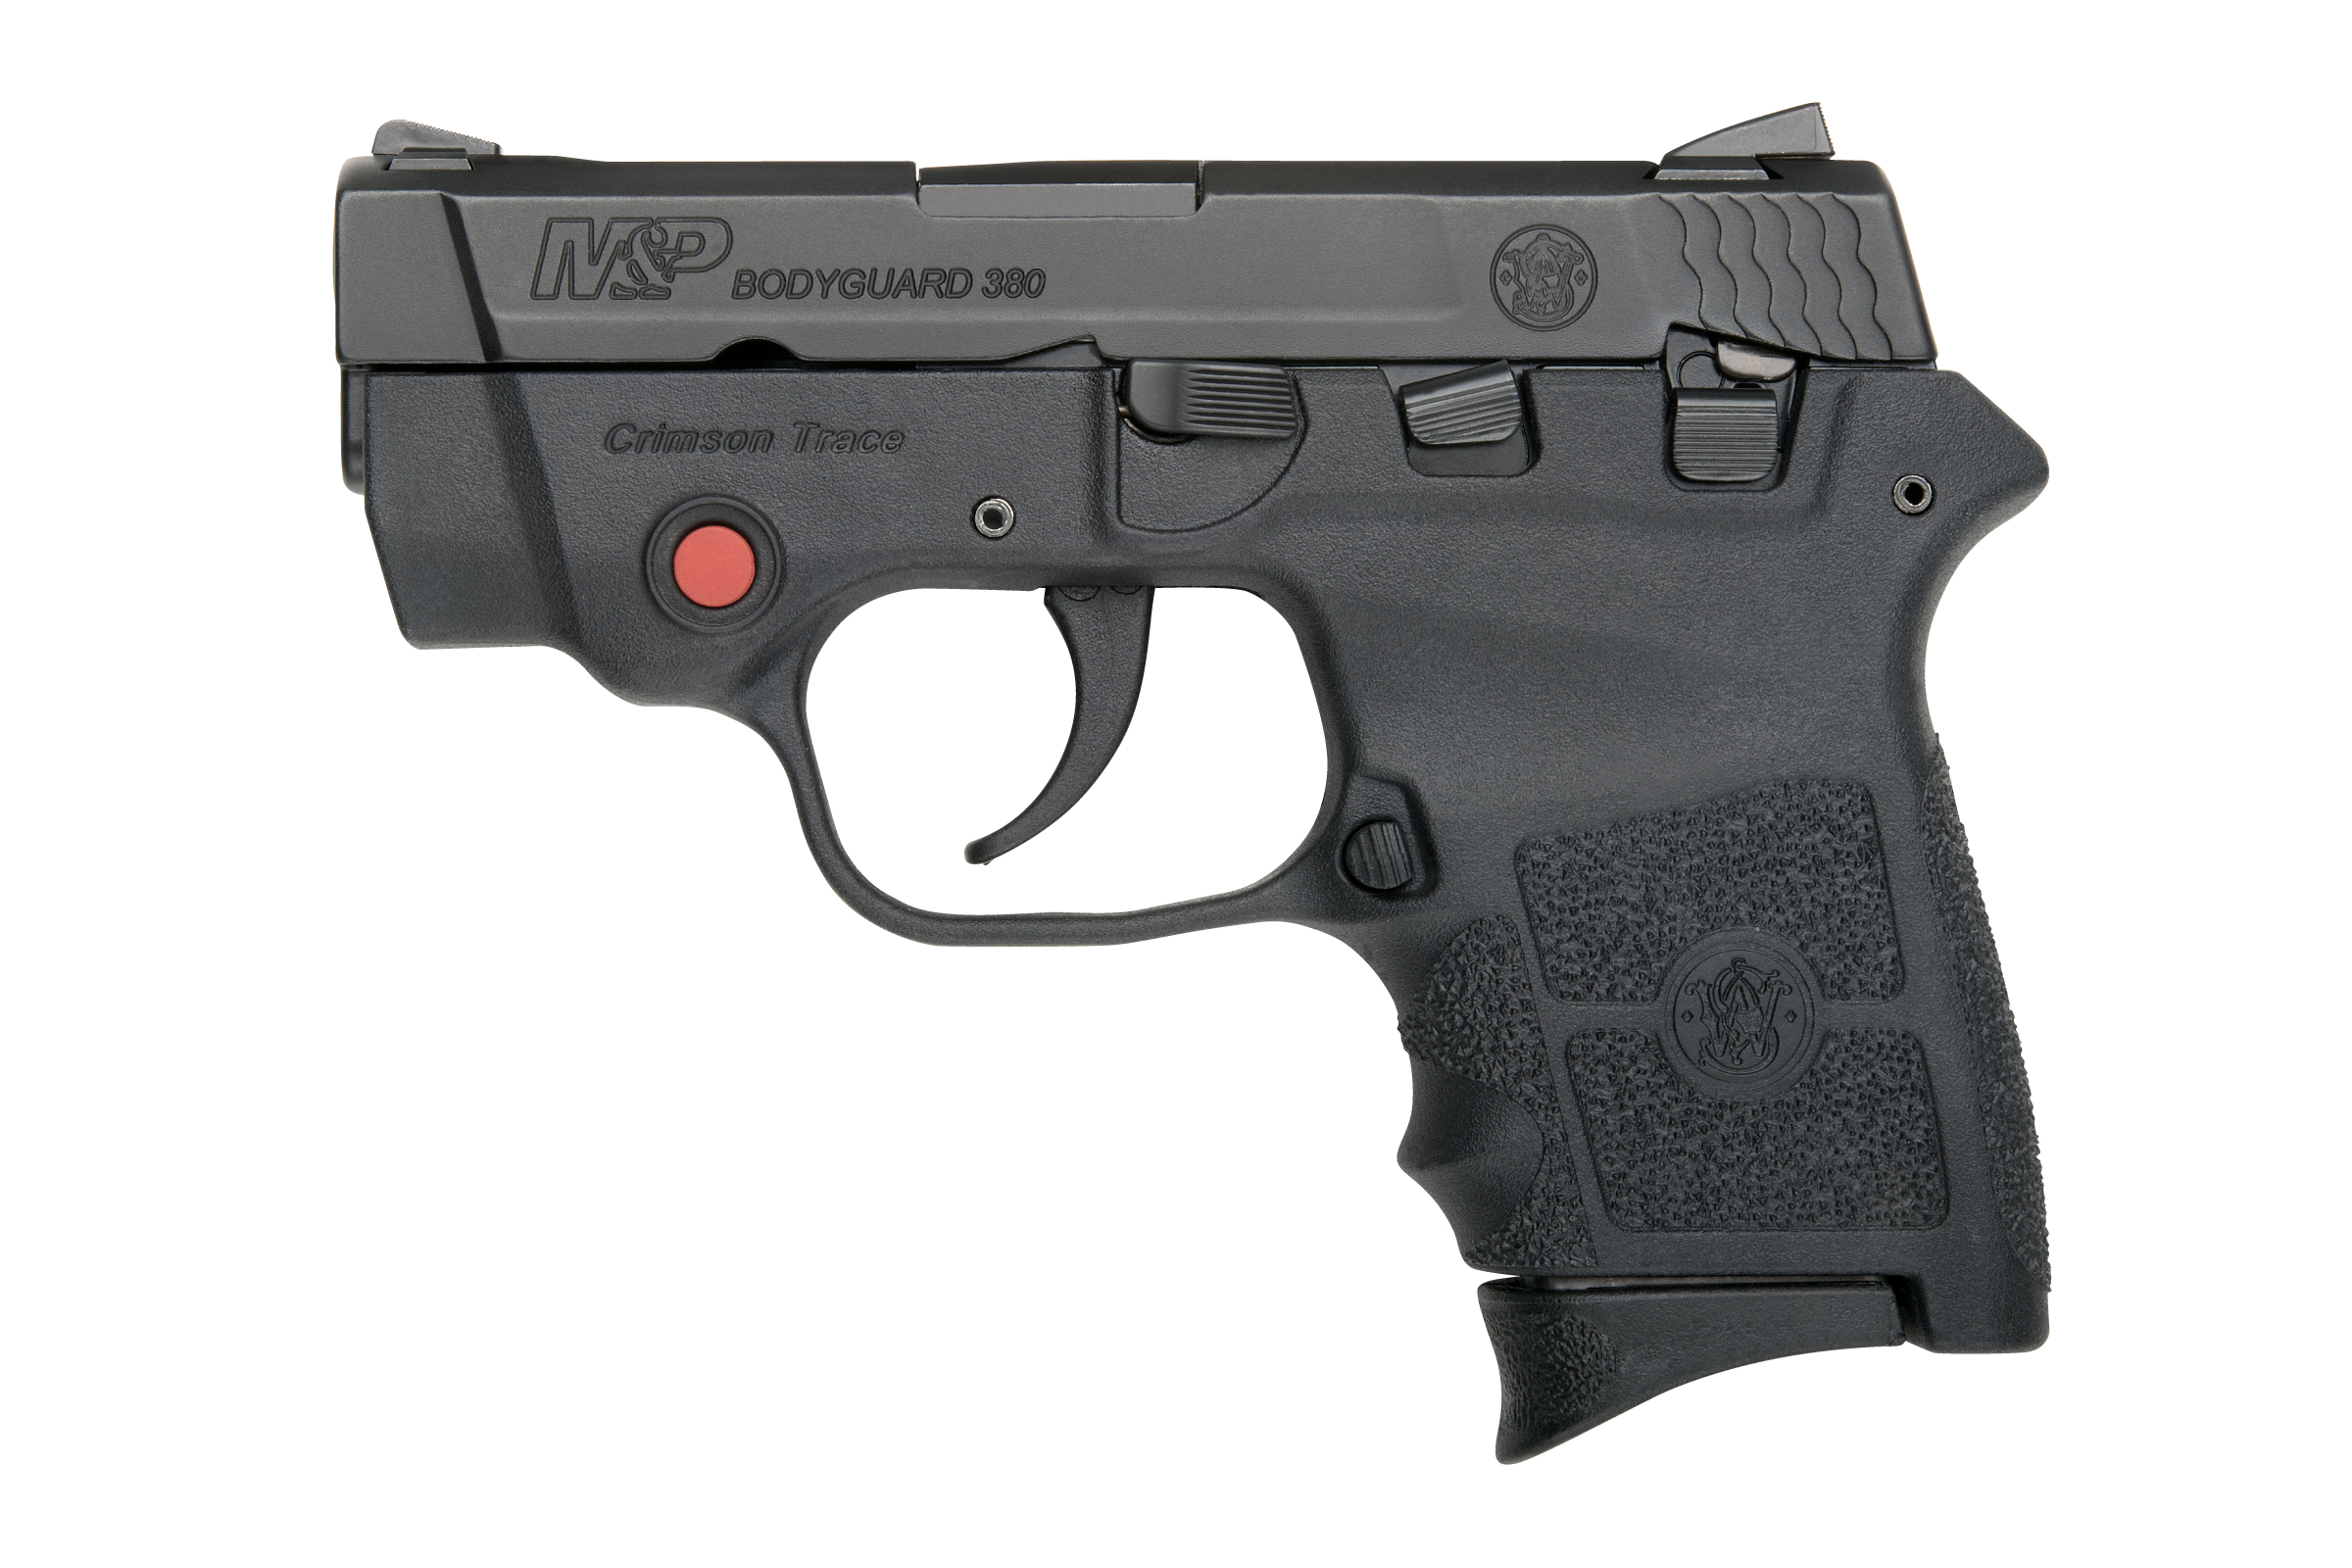 Smith and Wesson M&P BODYGUARD 380 380 ACP